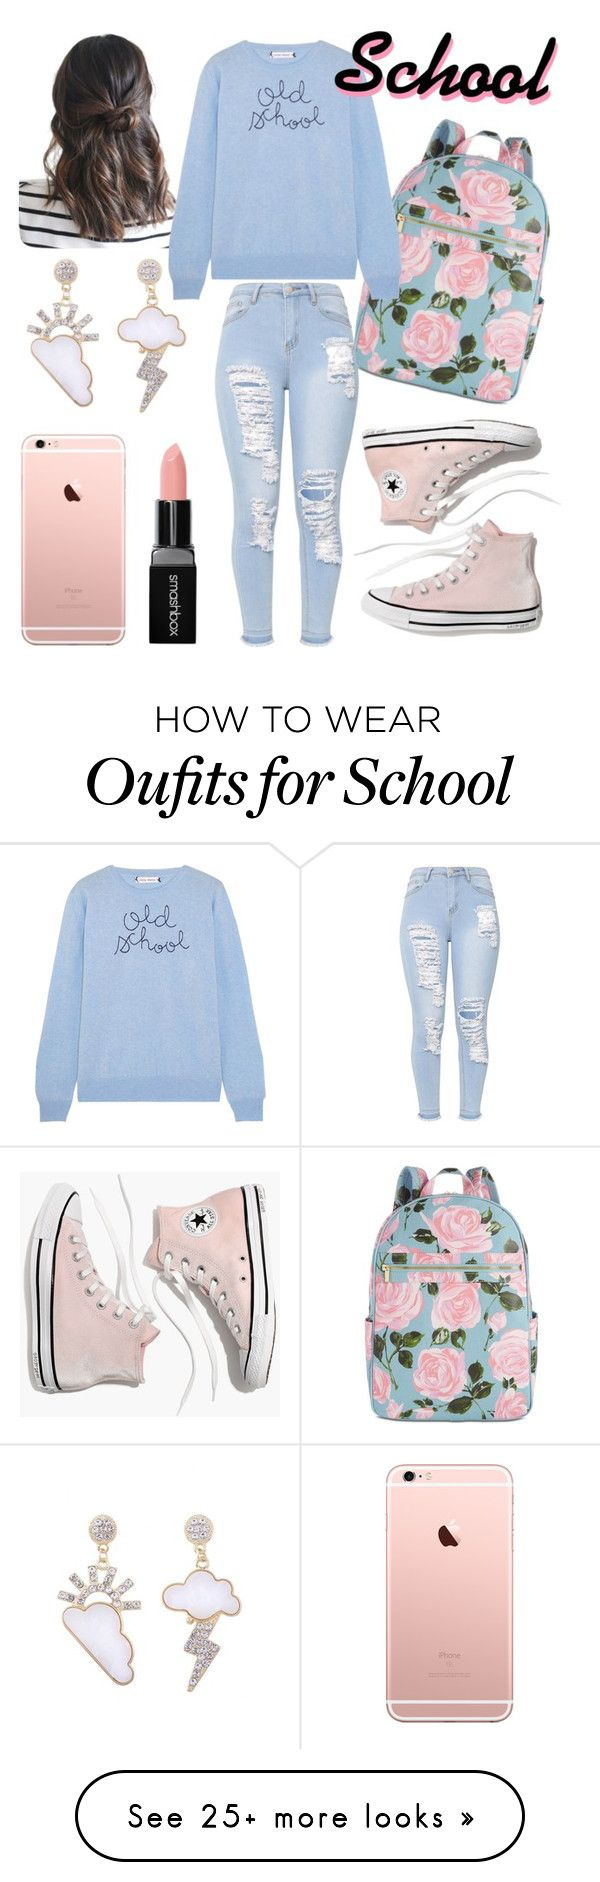 """Ideas for school, #1 "" by monika-monica on Polyvore featuring ban.do, Lingua Franca, Madewell and Smashbox"